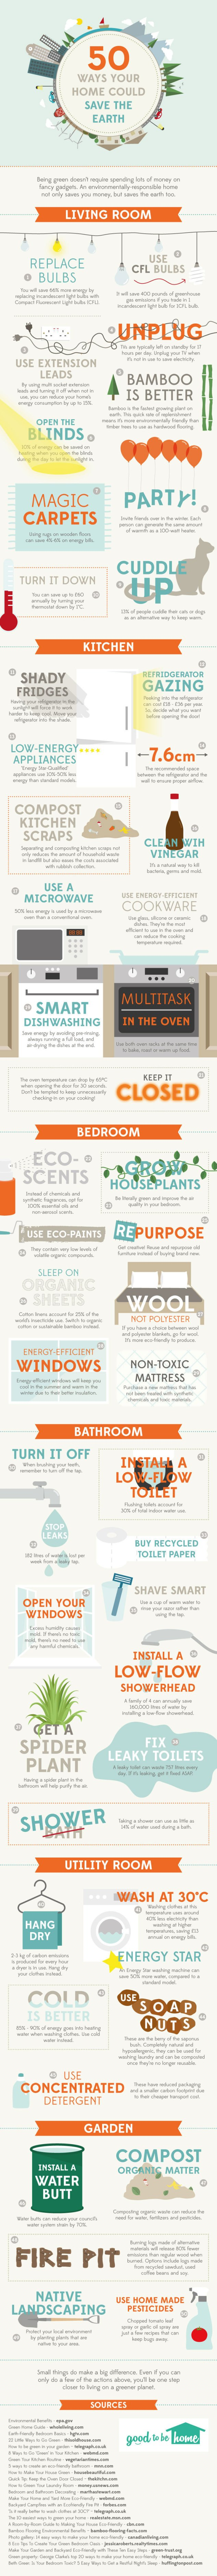 50 Ways your home could save the earth.jpg